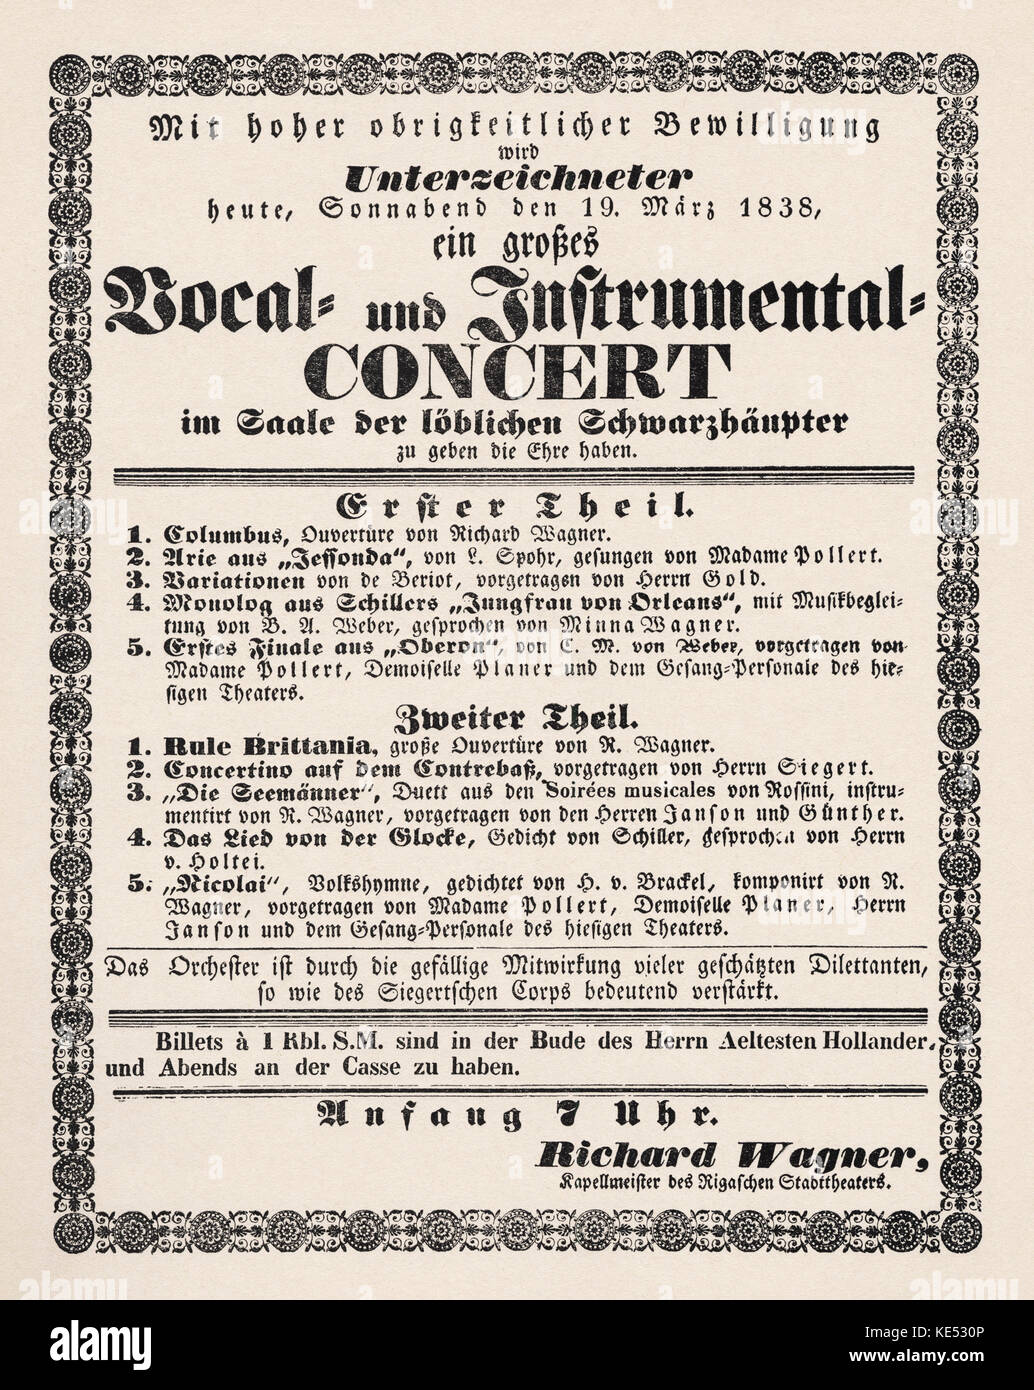 Programme for concert led by Richard Wagner in his role of Kapellmeister at the Riga Theatre, Latvia, on 19 March - Stock Image